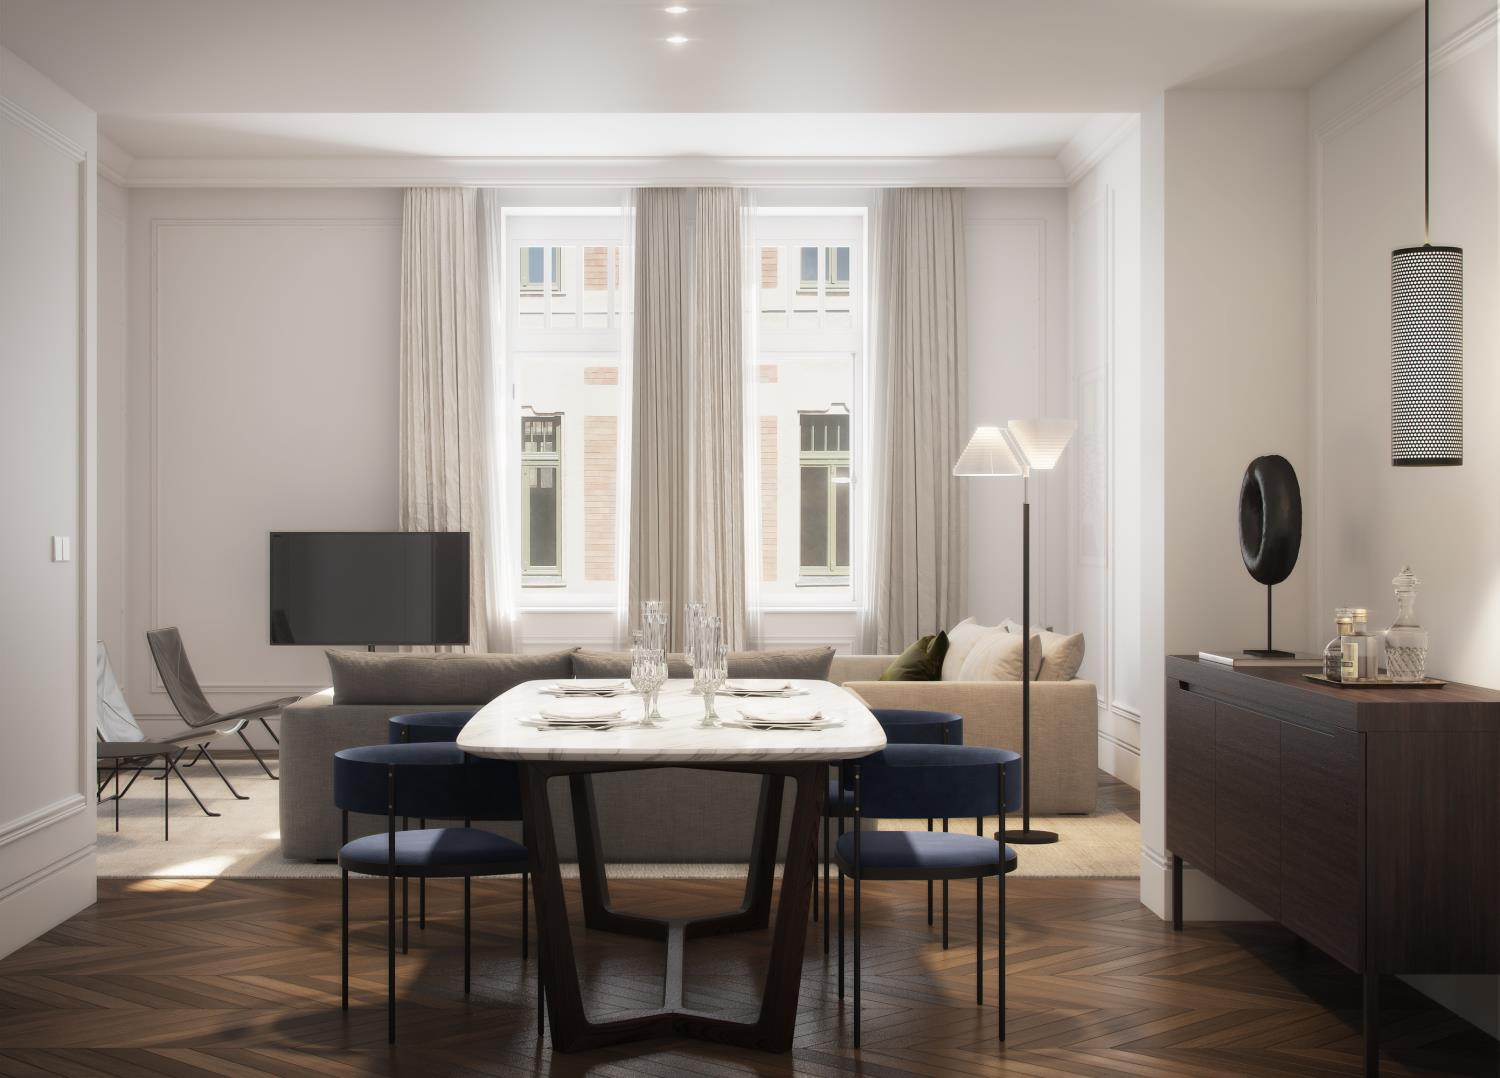 3D INFOGRAPHICS FOR A HOTEL SUITE IN BUDAPEST